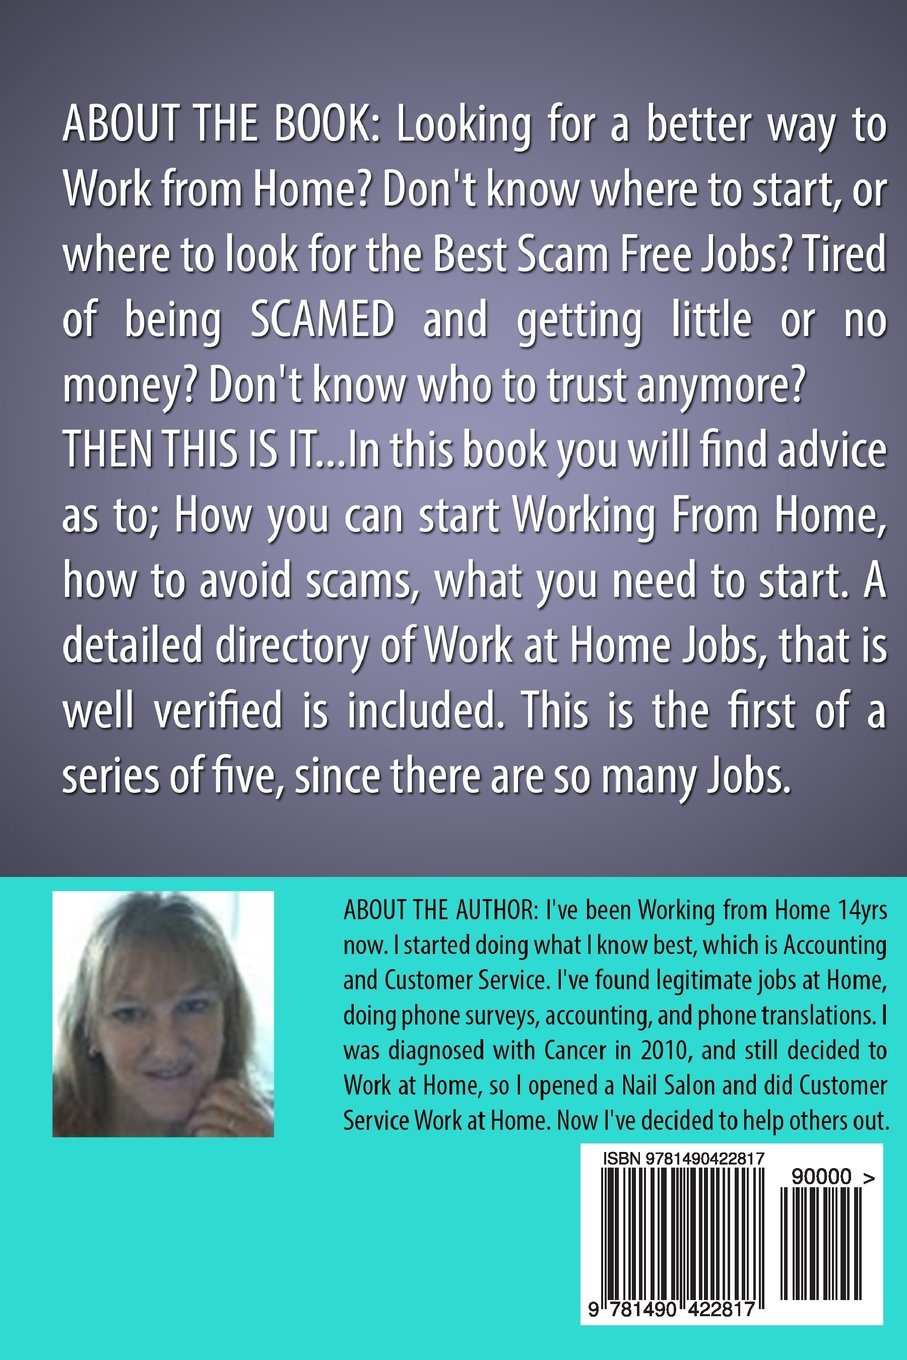 Work From Home Series 1 Call Center And Customer Service Jobs